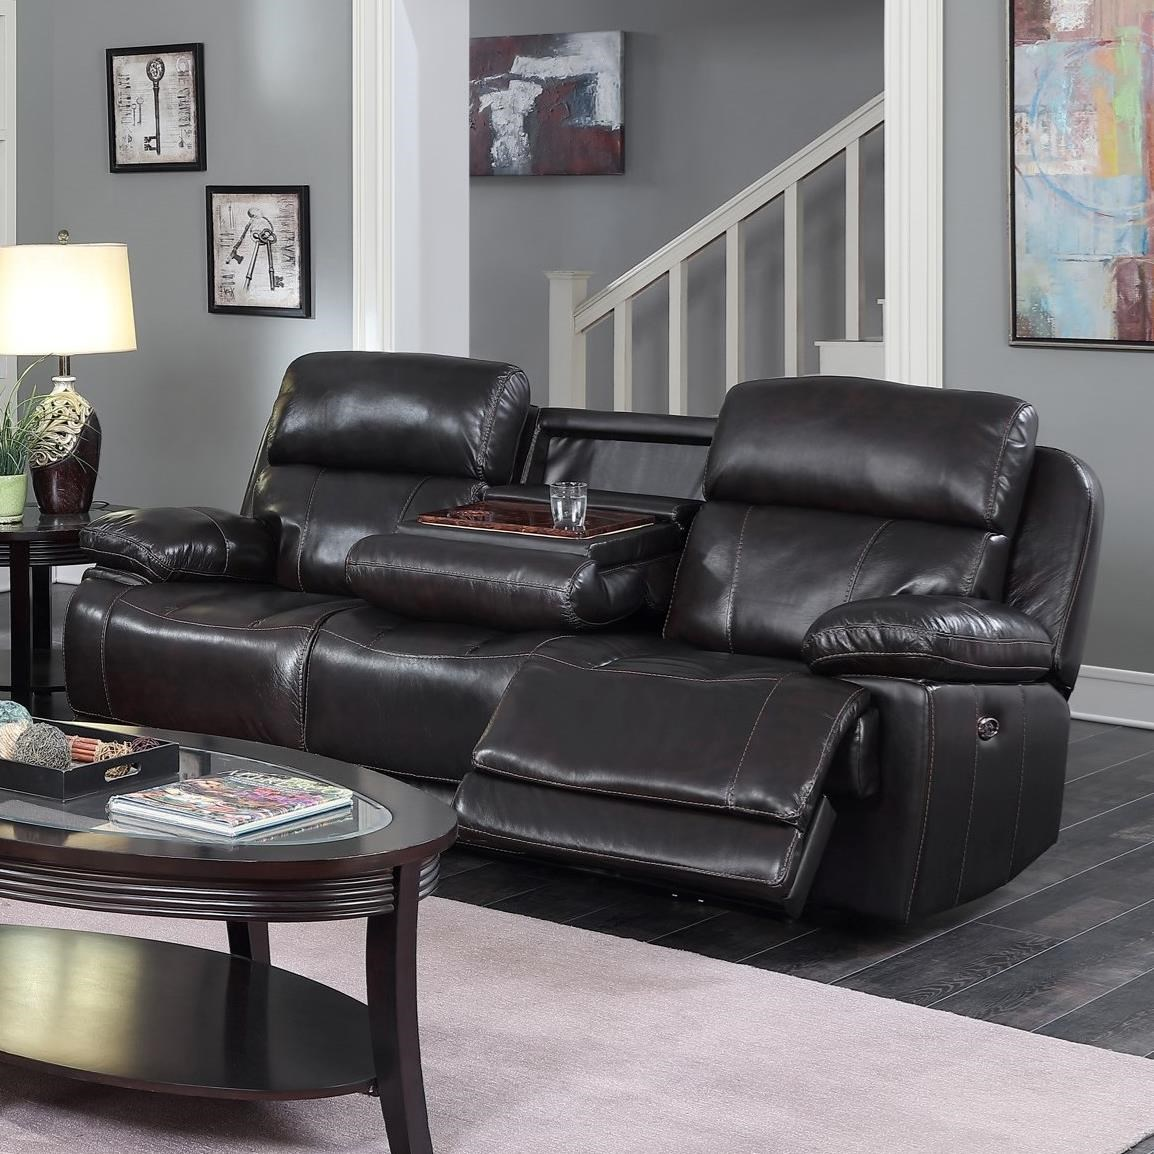 Leather Sofa Nashville American Signature Furniture Franklin Tn 37067 Thesofa